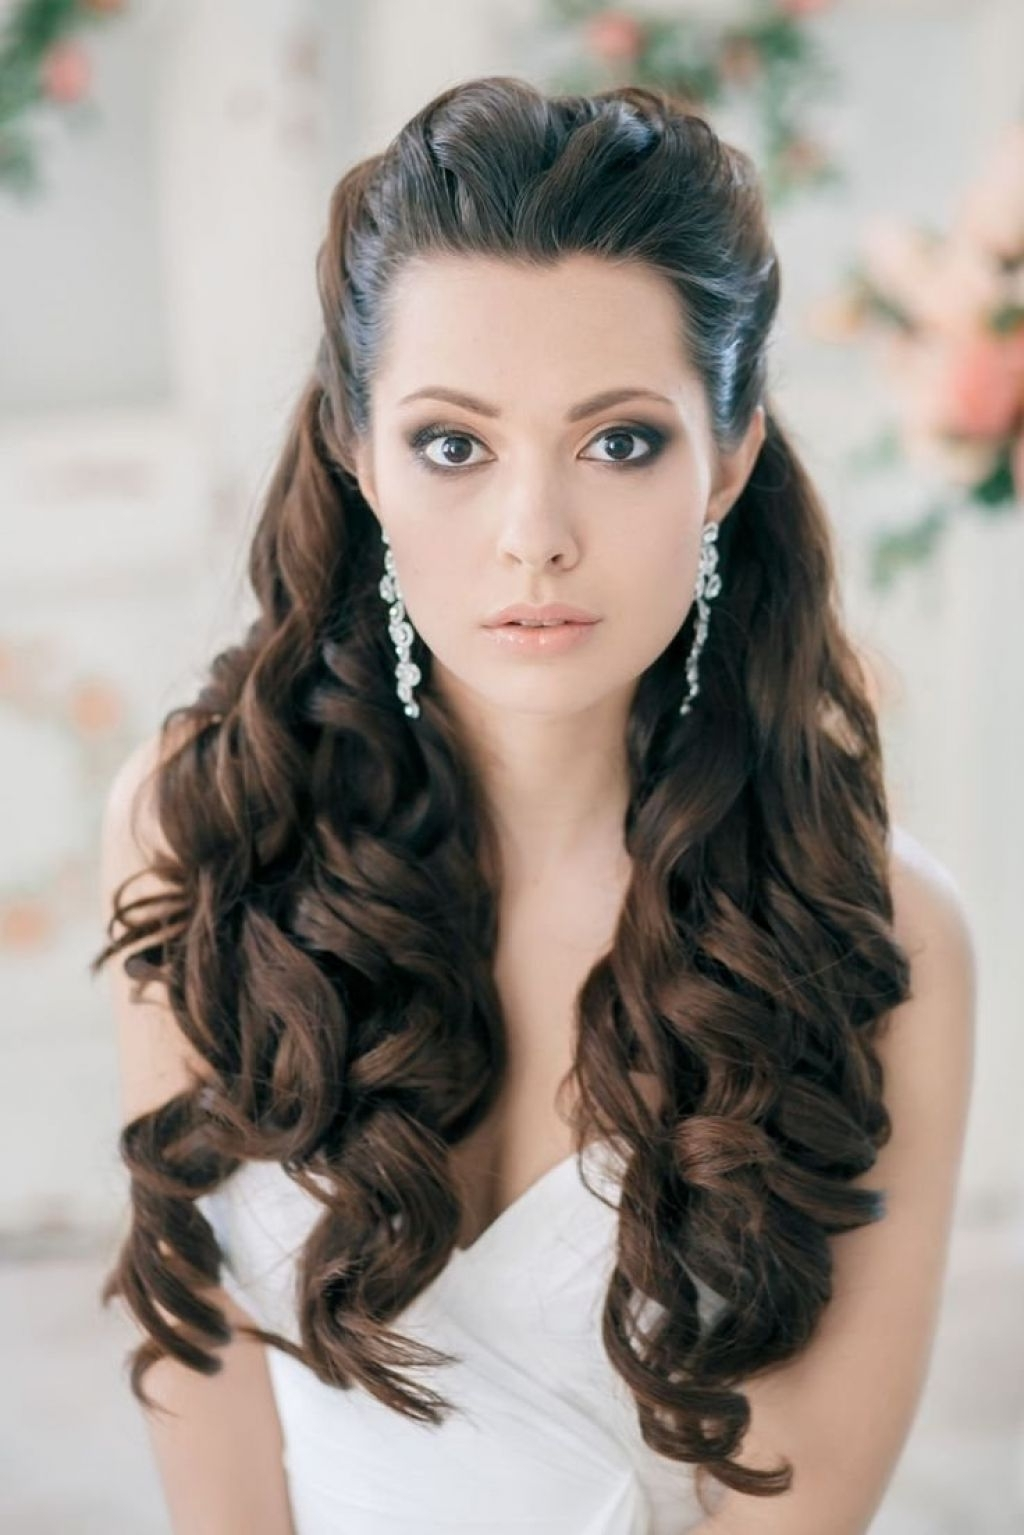 √ 24+ Lovely Wedding Hairstyles For Long Hair Down: Bridal Pertaining To Recent Wedding Hairstyles For Long Hair Down With Flowers (View 12 of 15)